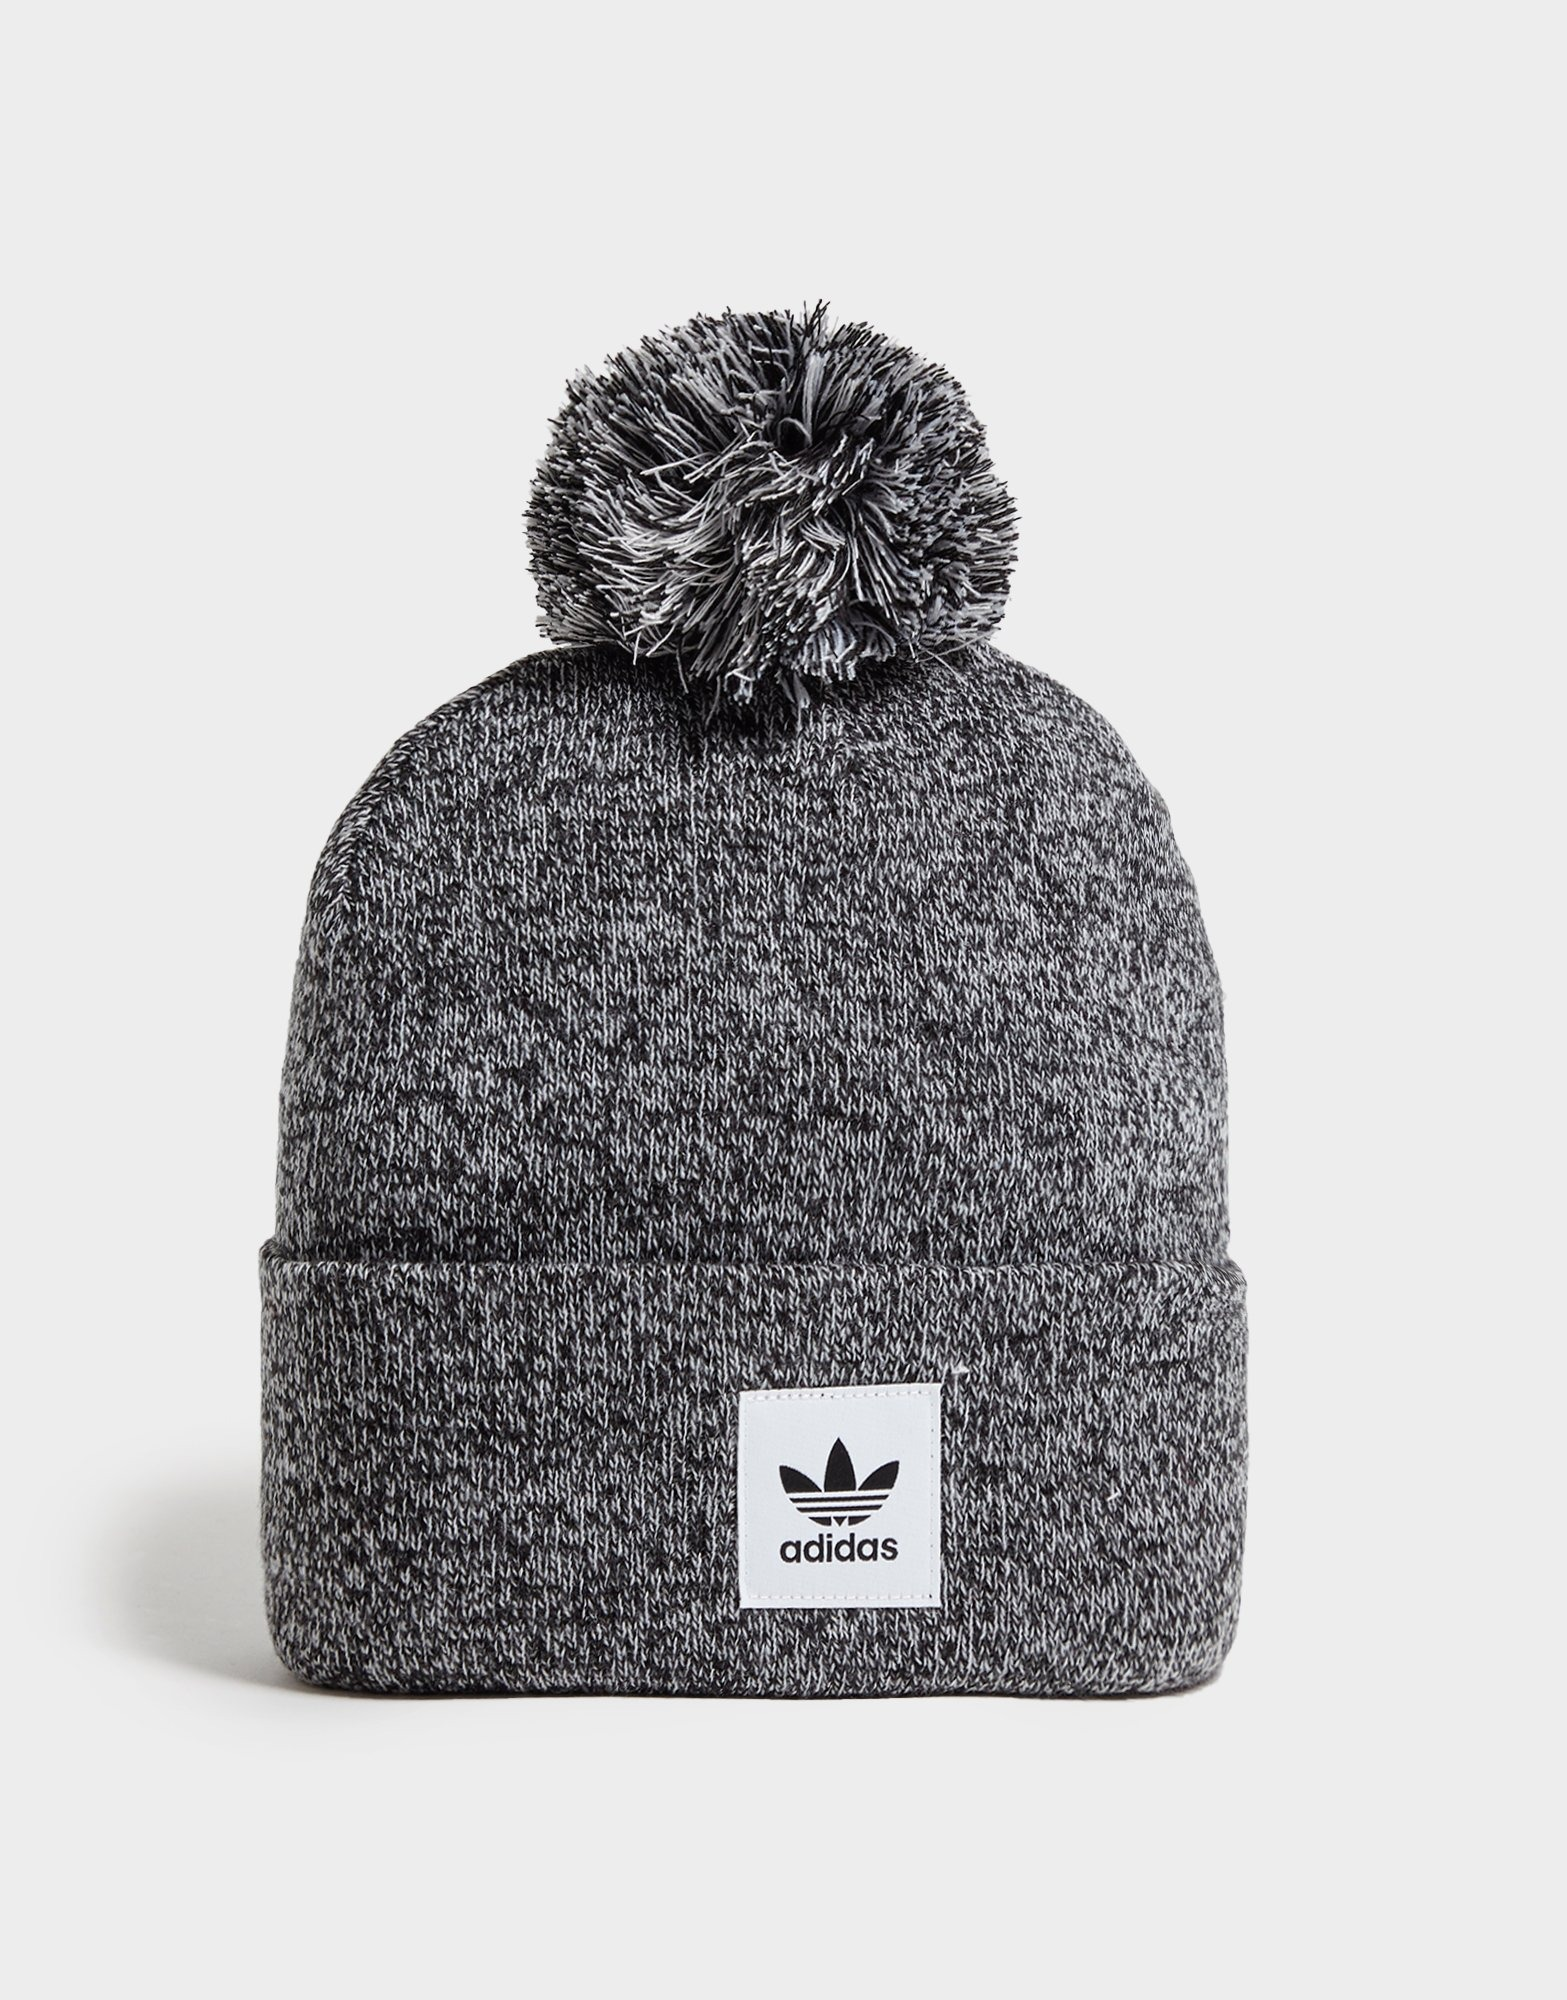 adidas r1 winter wool, Adidas originals monochrome trefoil